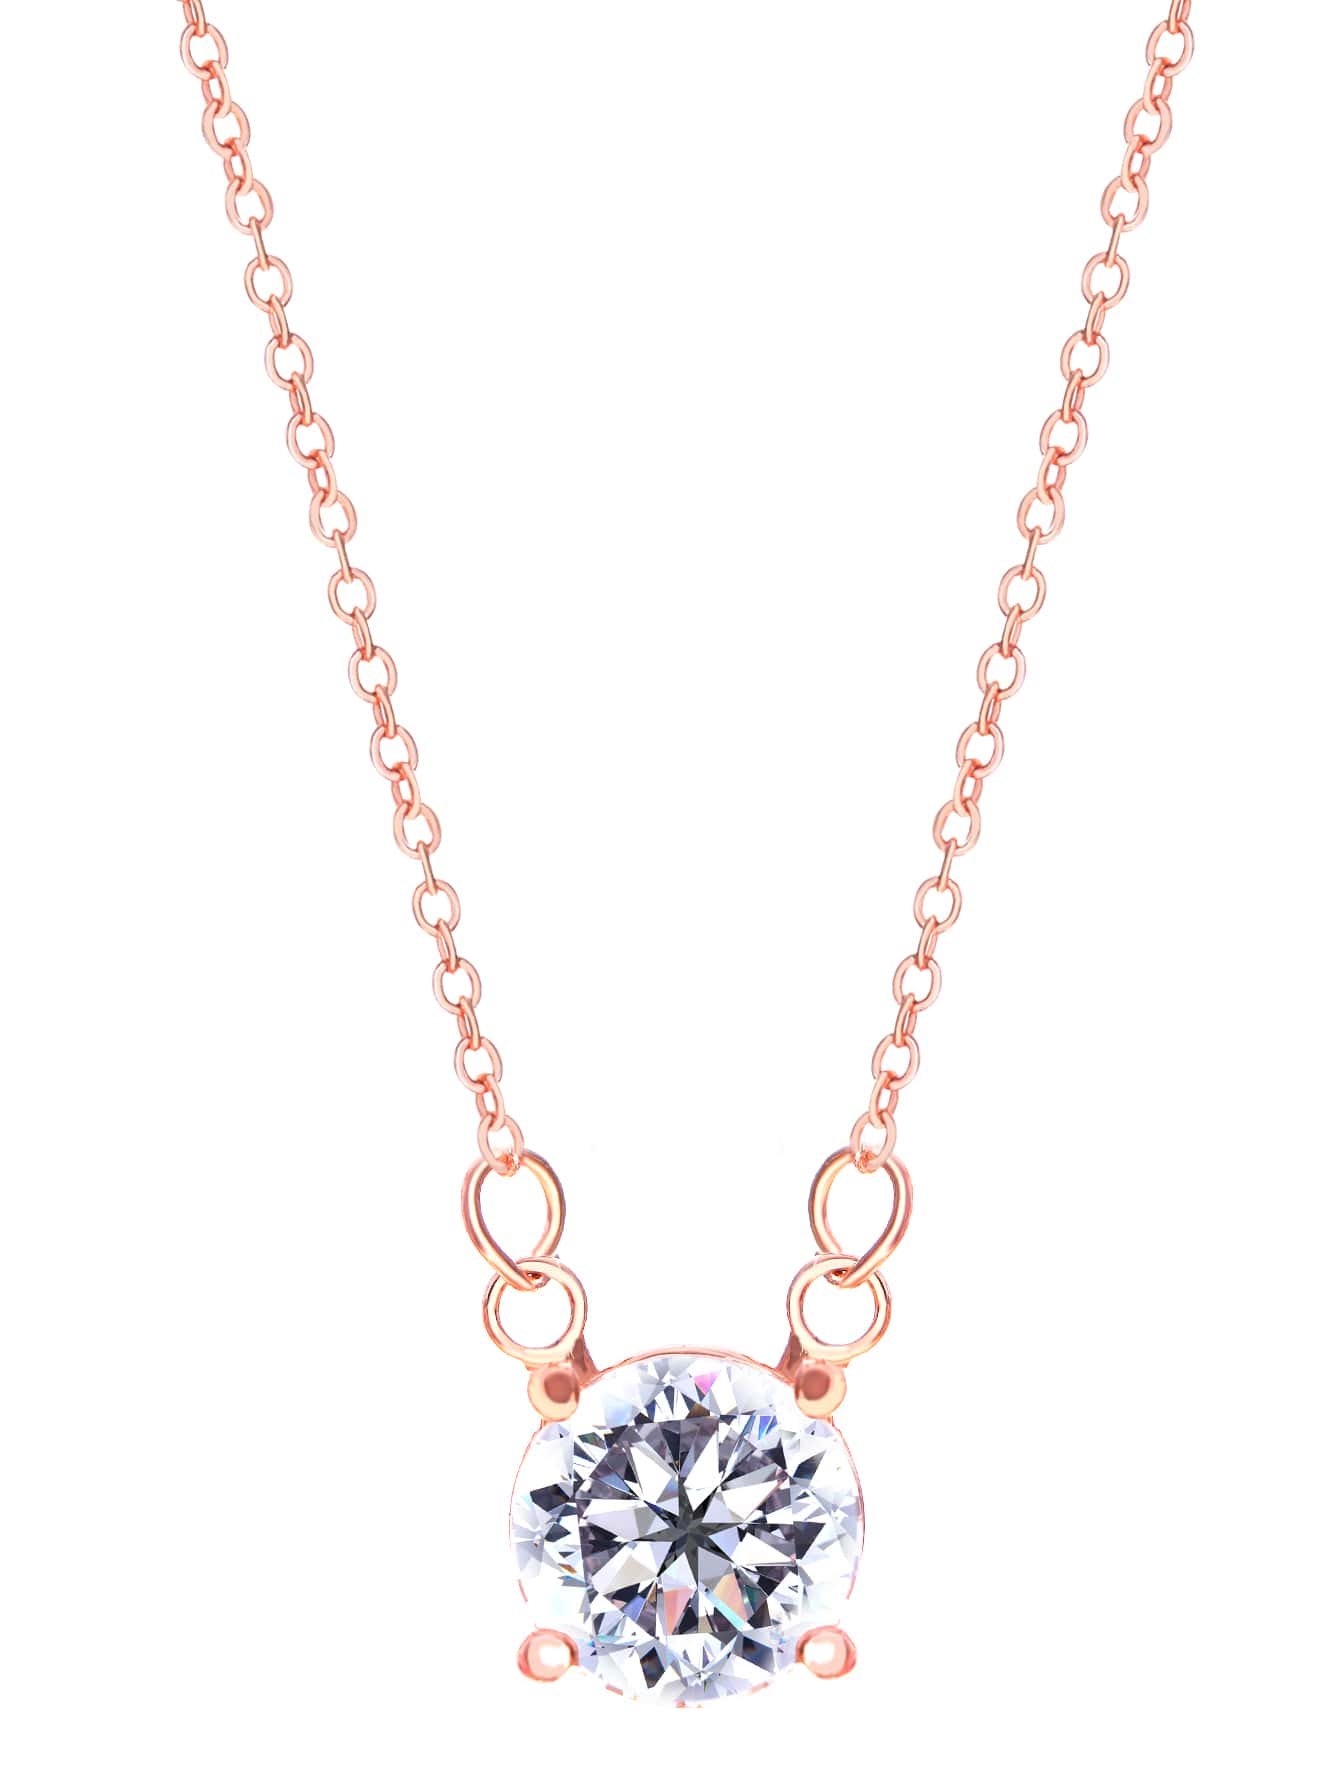 Rose Gold Plated Crystal Pendant NecklaceRose Gold Plated Crystal Pendant Necklace<br><br>color: Gold<br>size: None